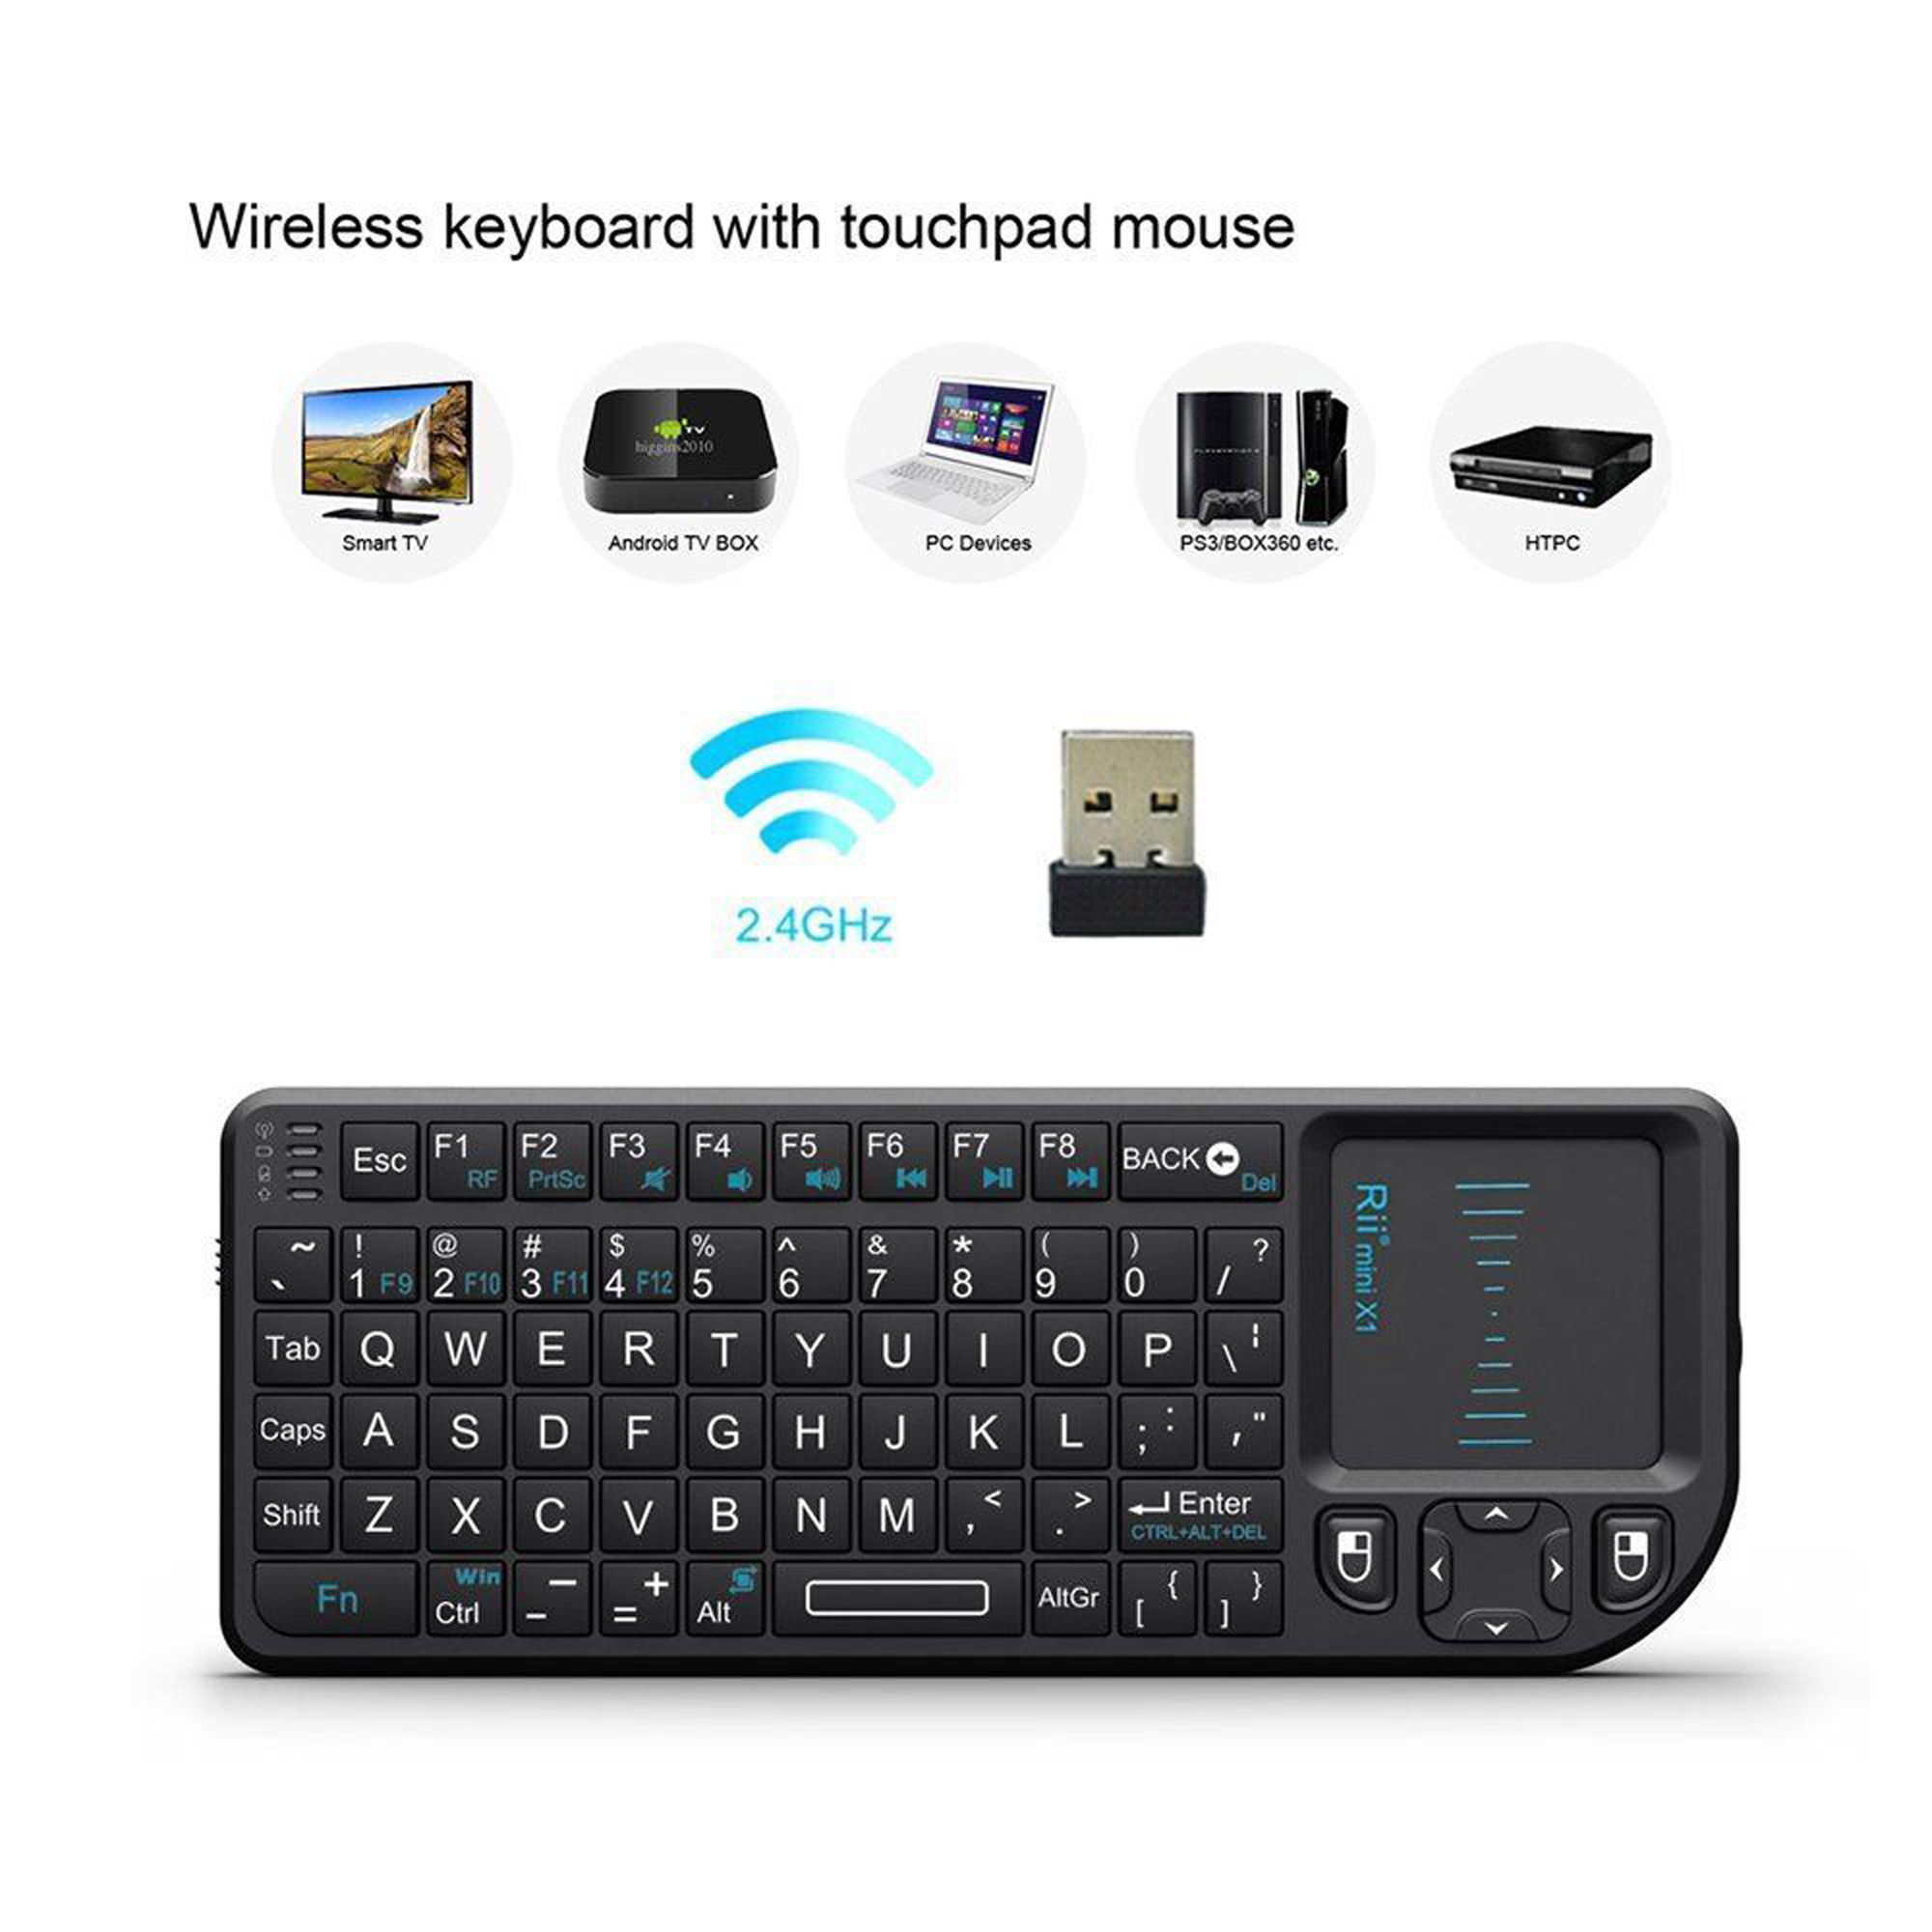 RII Mini X1 2.4GHz Wireless Keyboard with Mouse Touchpad and Remote Control